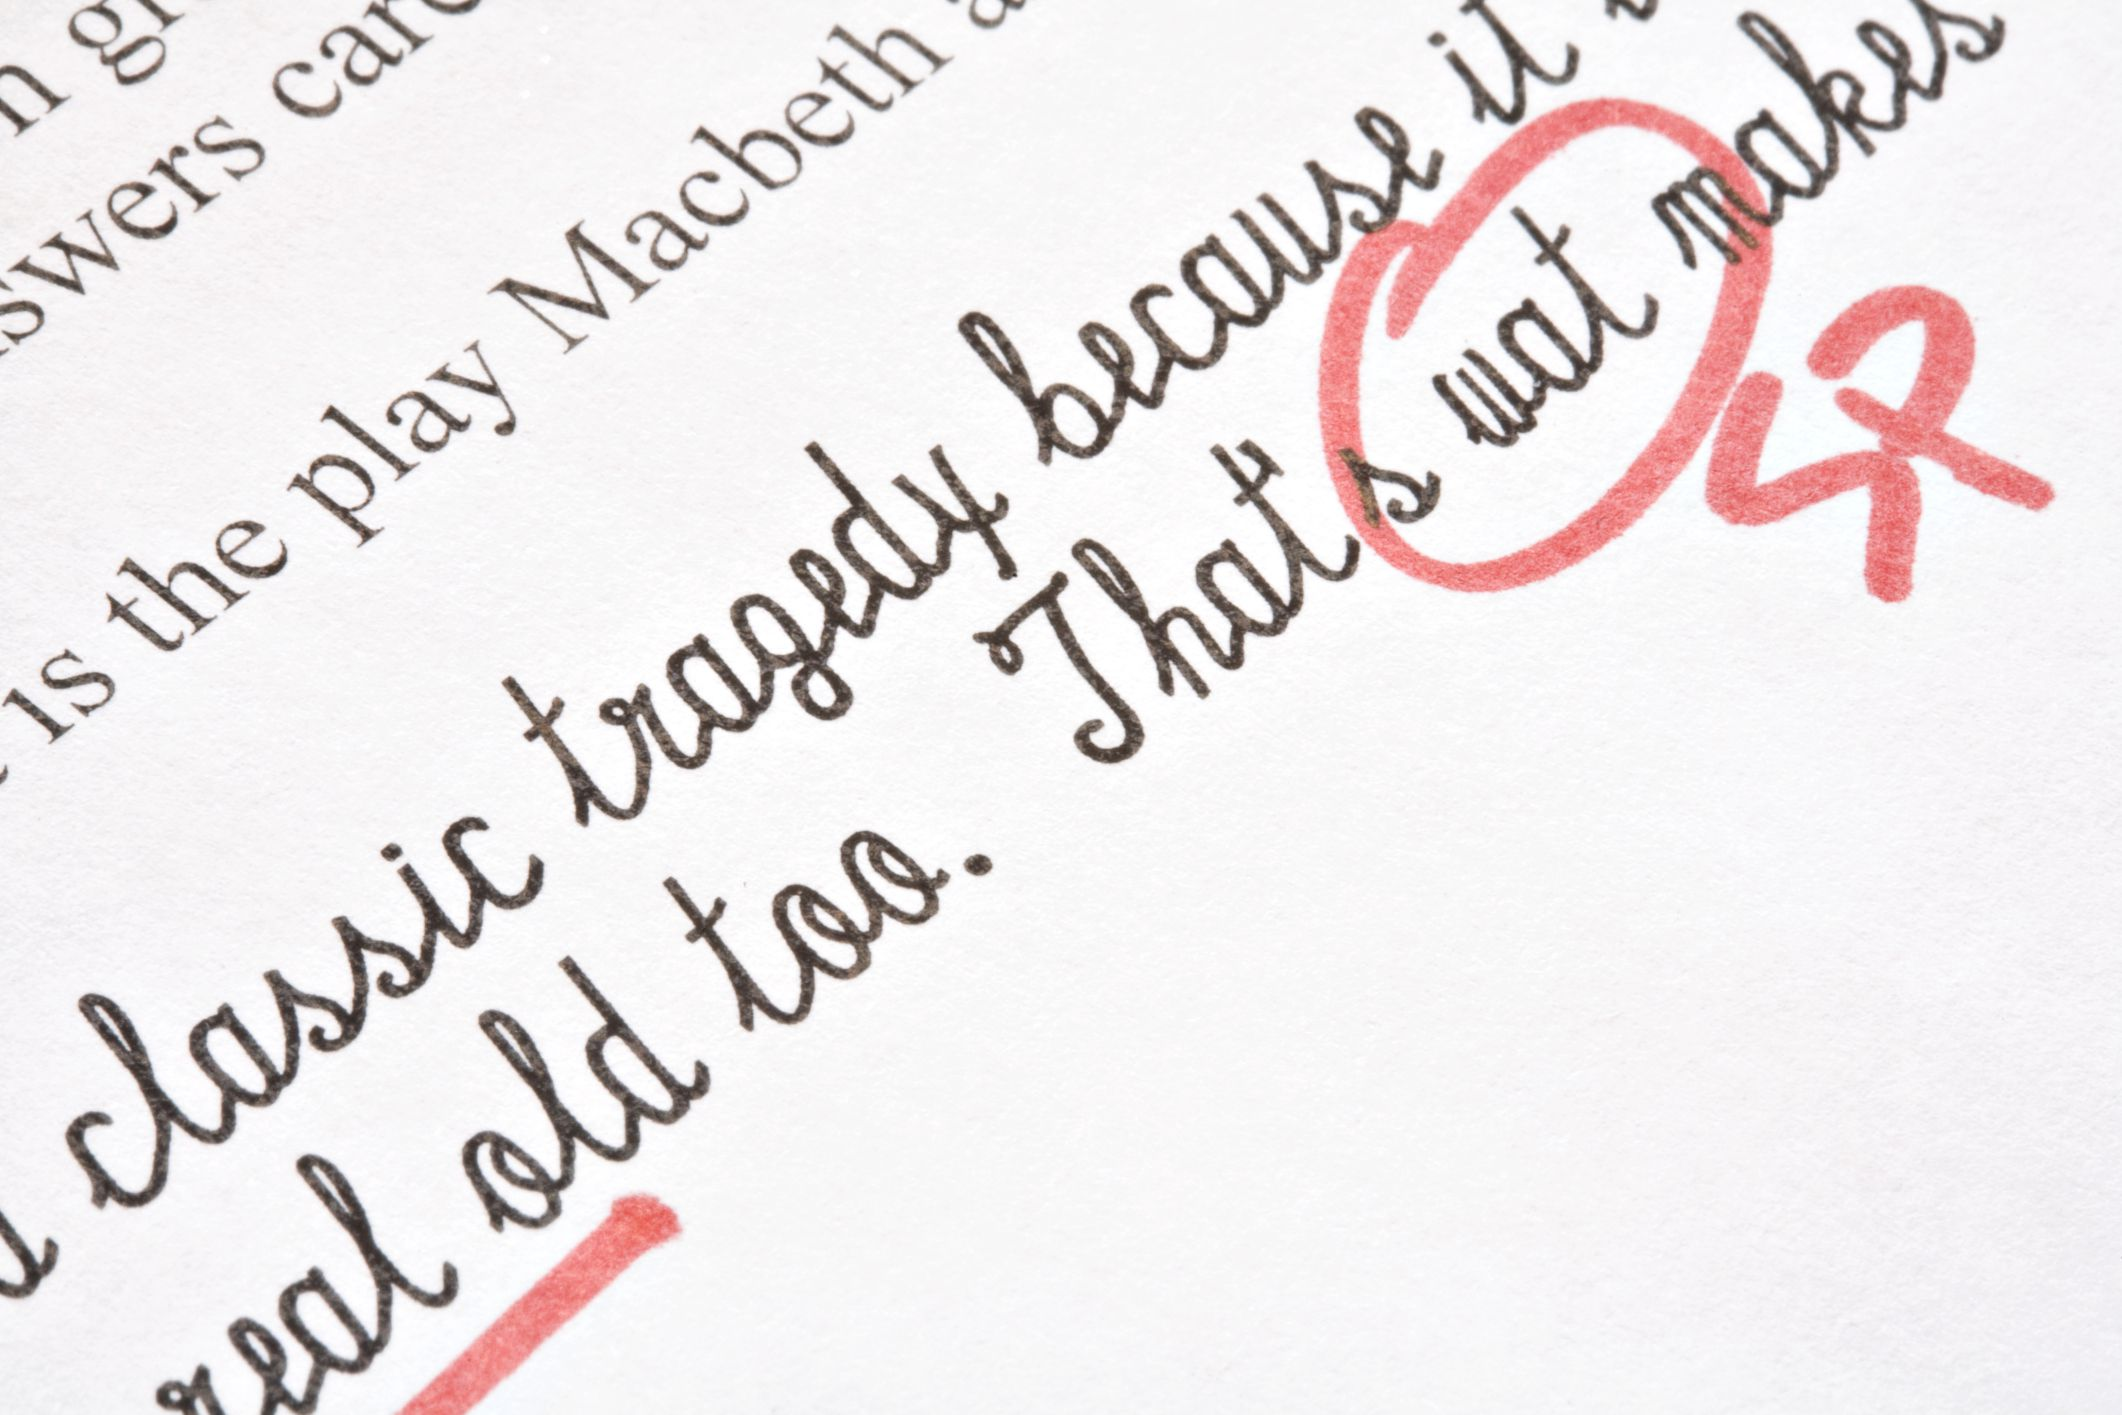 Common Editing And Proofreading Marks In Composition